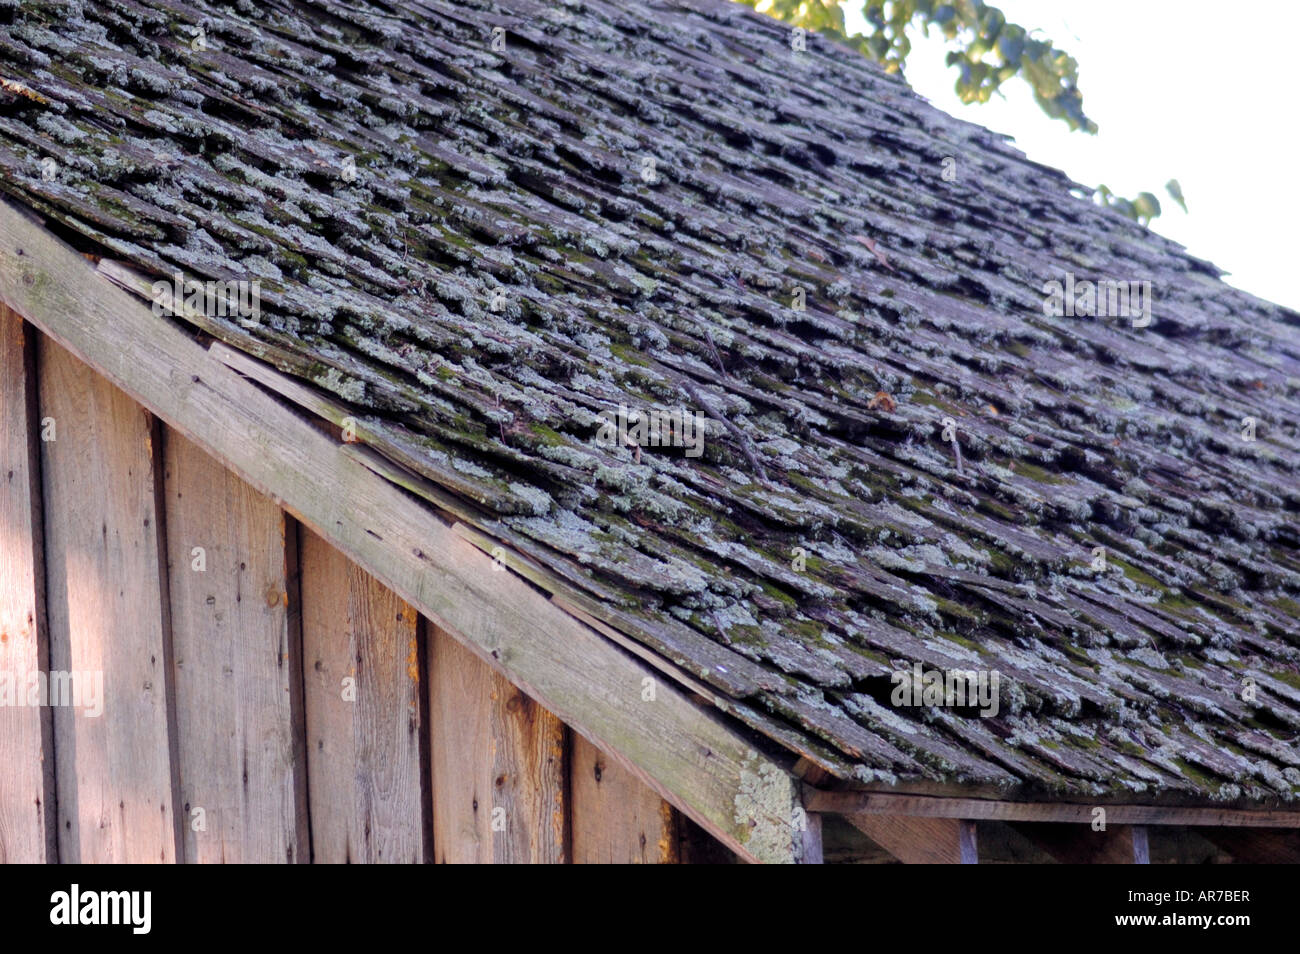 Wooden shakes on the roof of a pioneer log cabin in kentucky usa wooden shakes on the roof of a pioneer log cabin in kentucky usa publicscrutiny Image collections